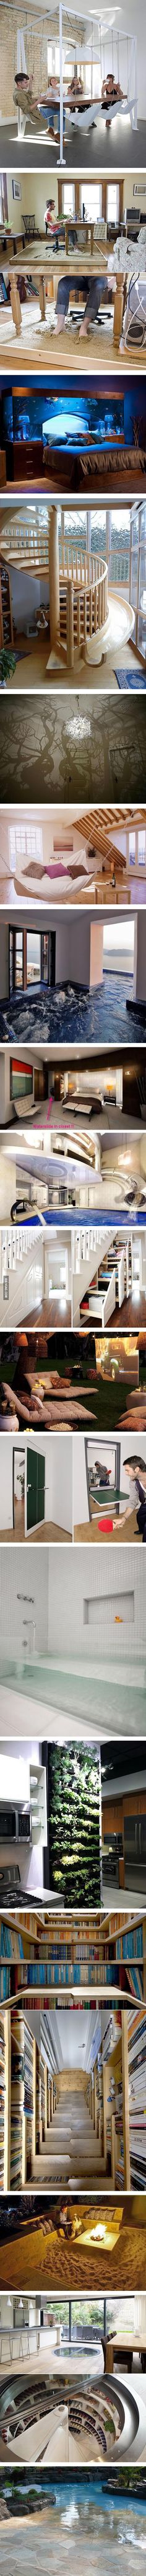 These are awesome ideas